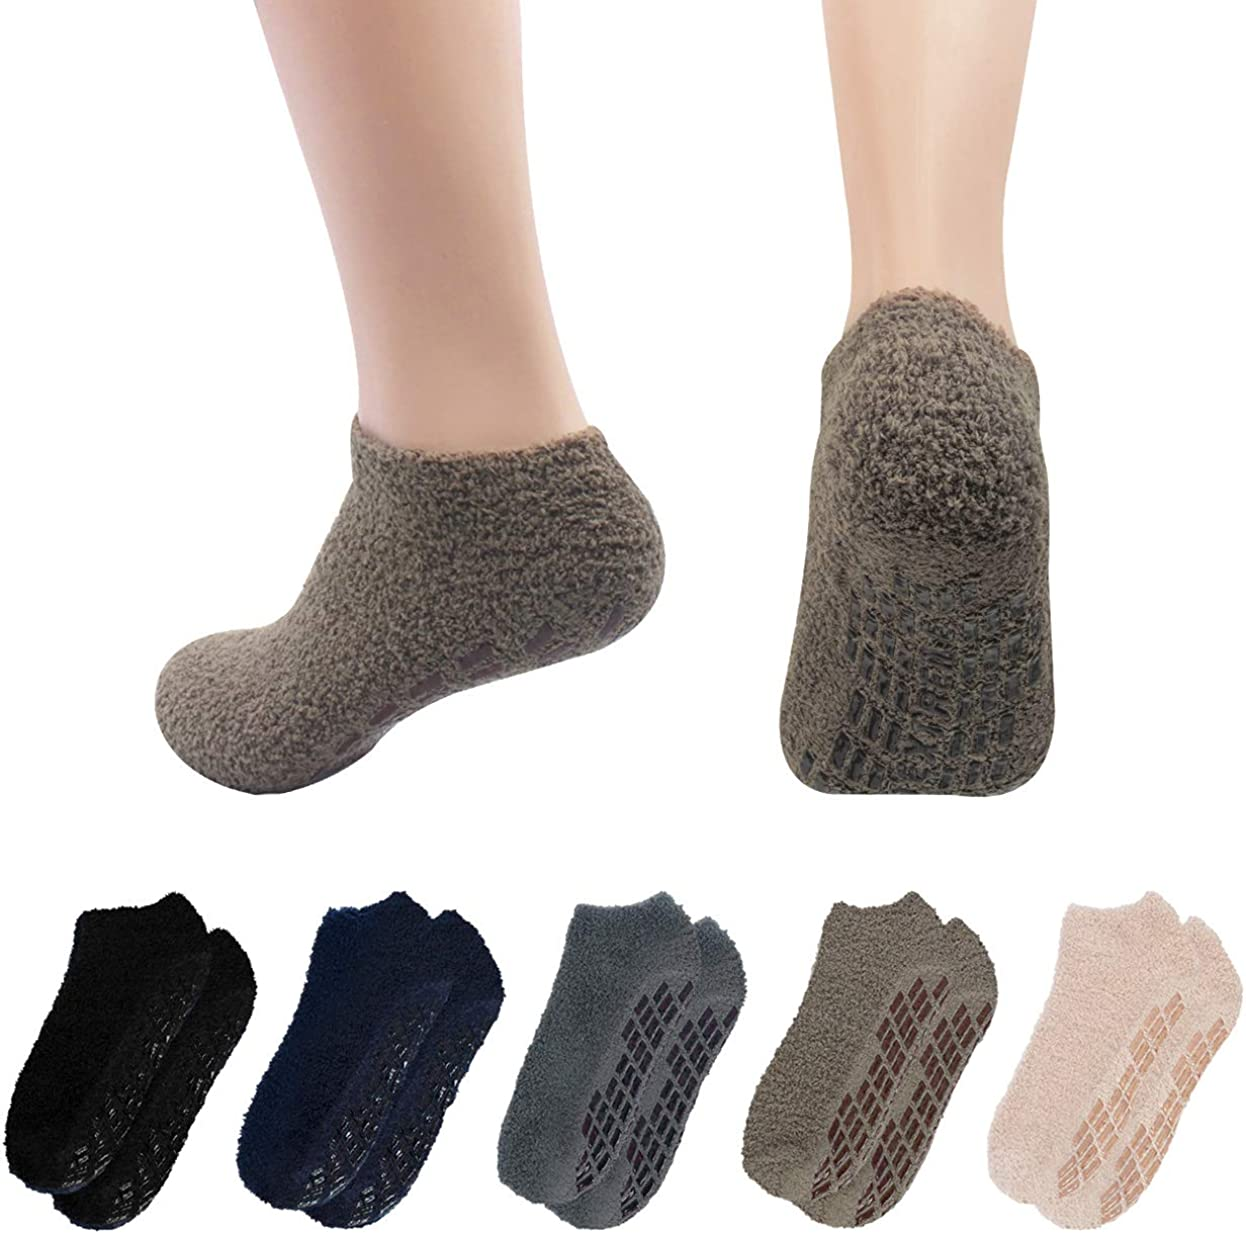 Morestep Mens 5 Pairs Warm Fuzzy Non Slip Hospital Home Ankle Slipper Socks At Amazon Men S Clothing Store